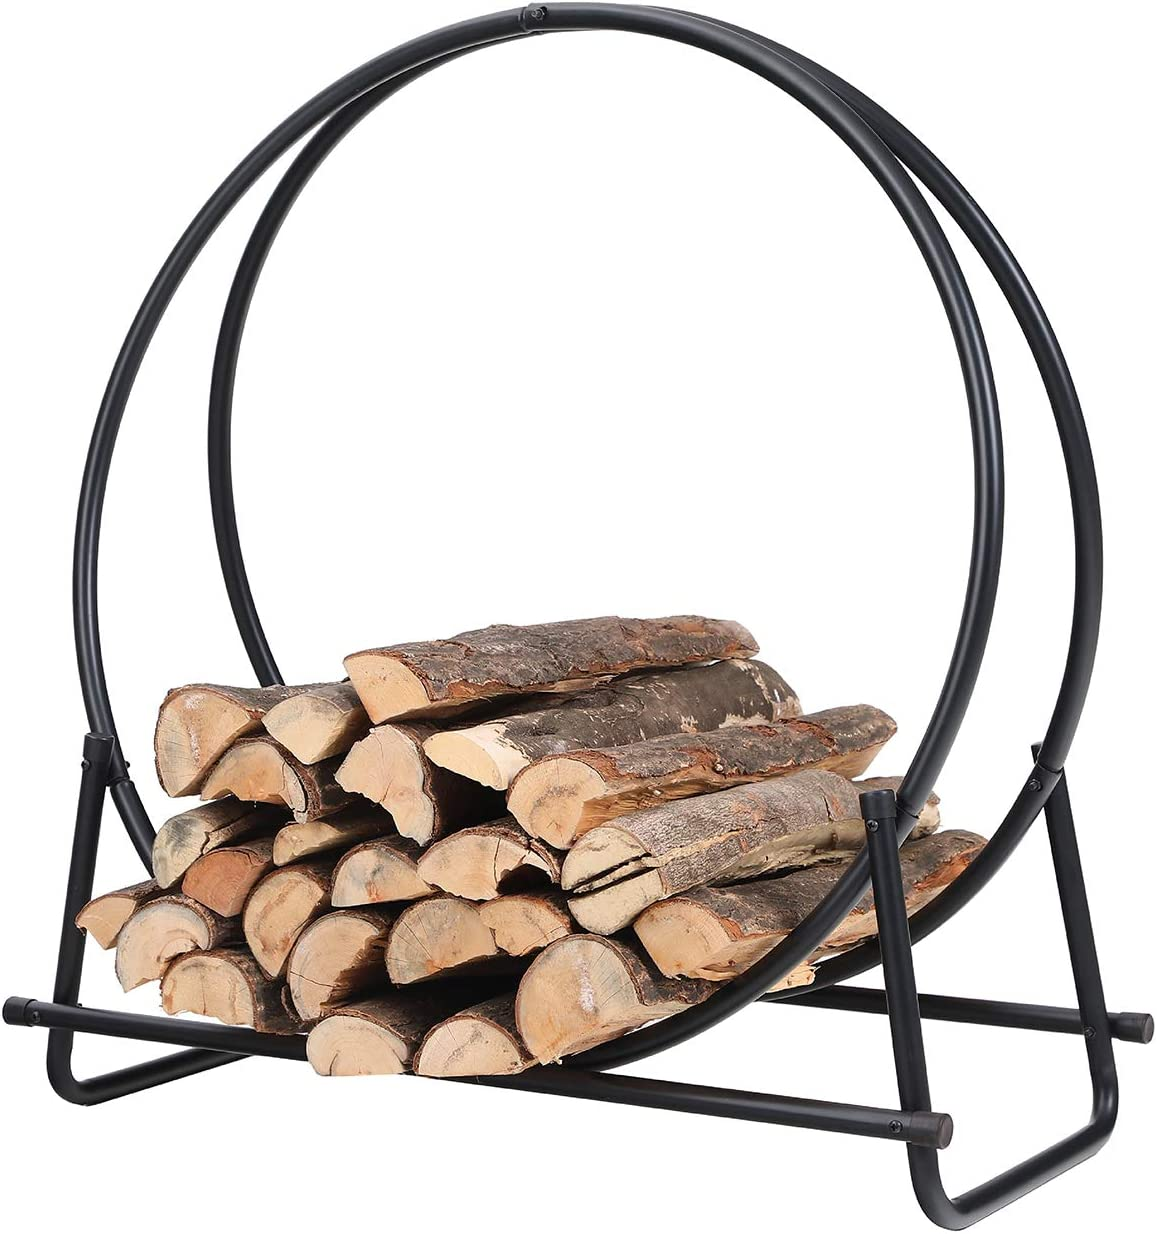 PHI VILLA 30 Inch Log Hoop Firewood Rack Fireplace Wood Storage Holder, Indoor Outdoor Heavy Duty Iron Black